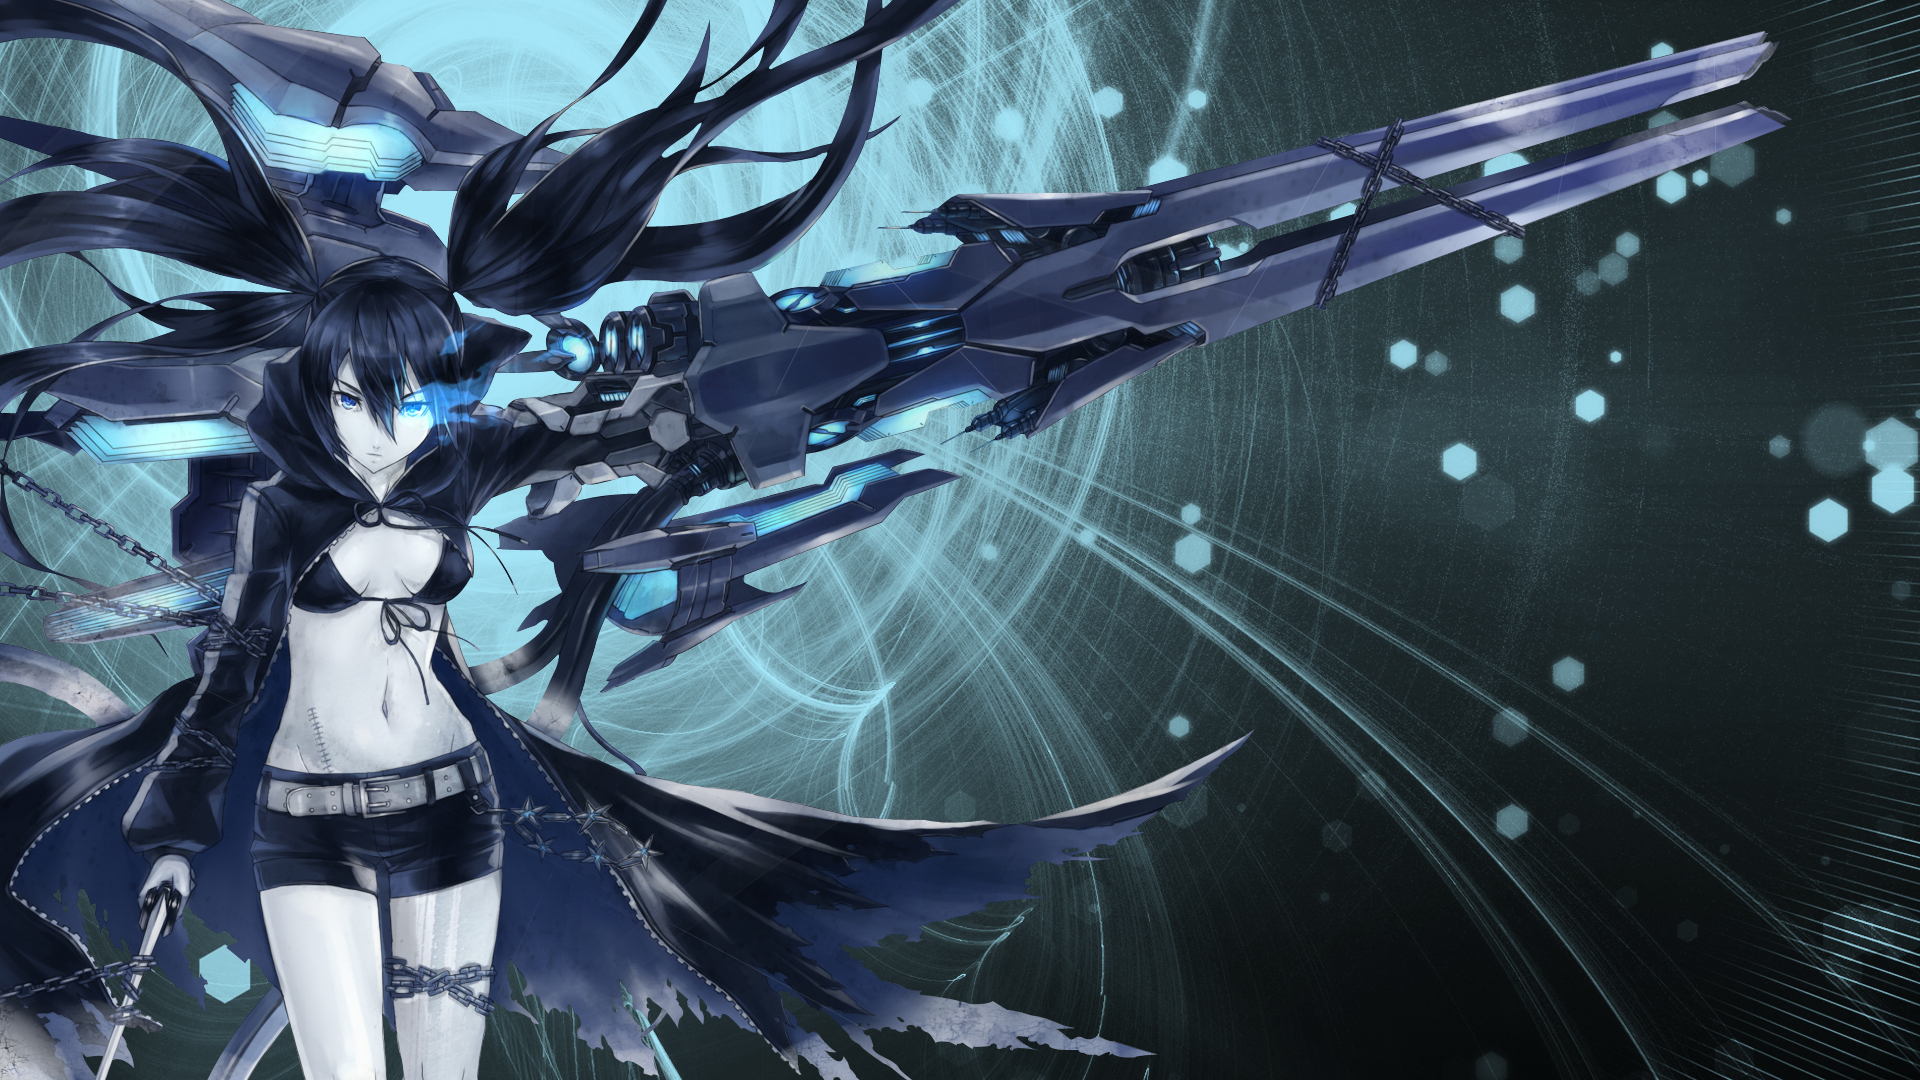 44 Black Rock Shooter Wallpapers Pictures